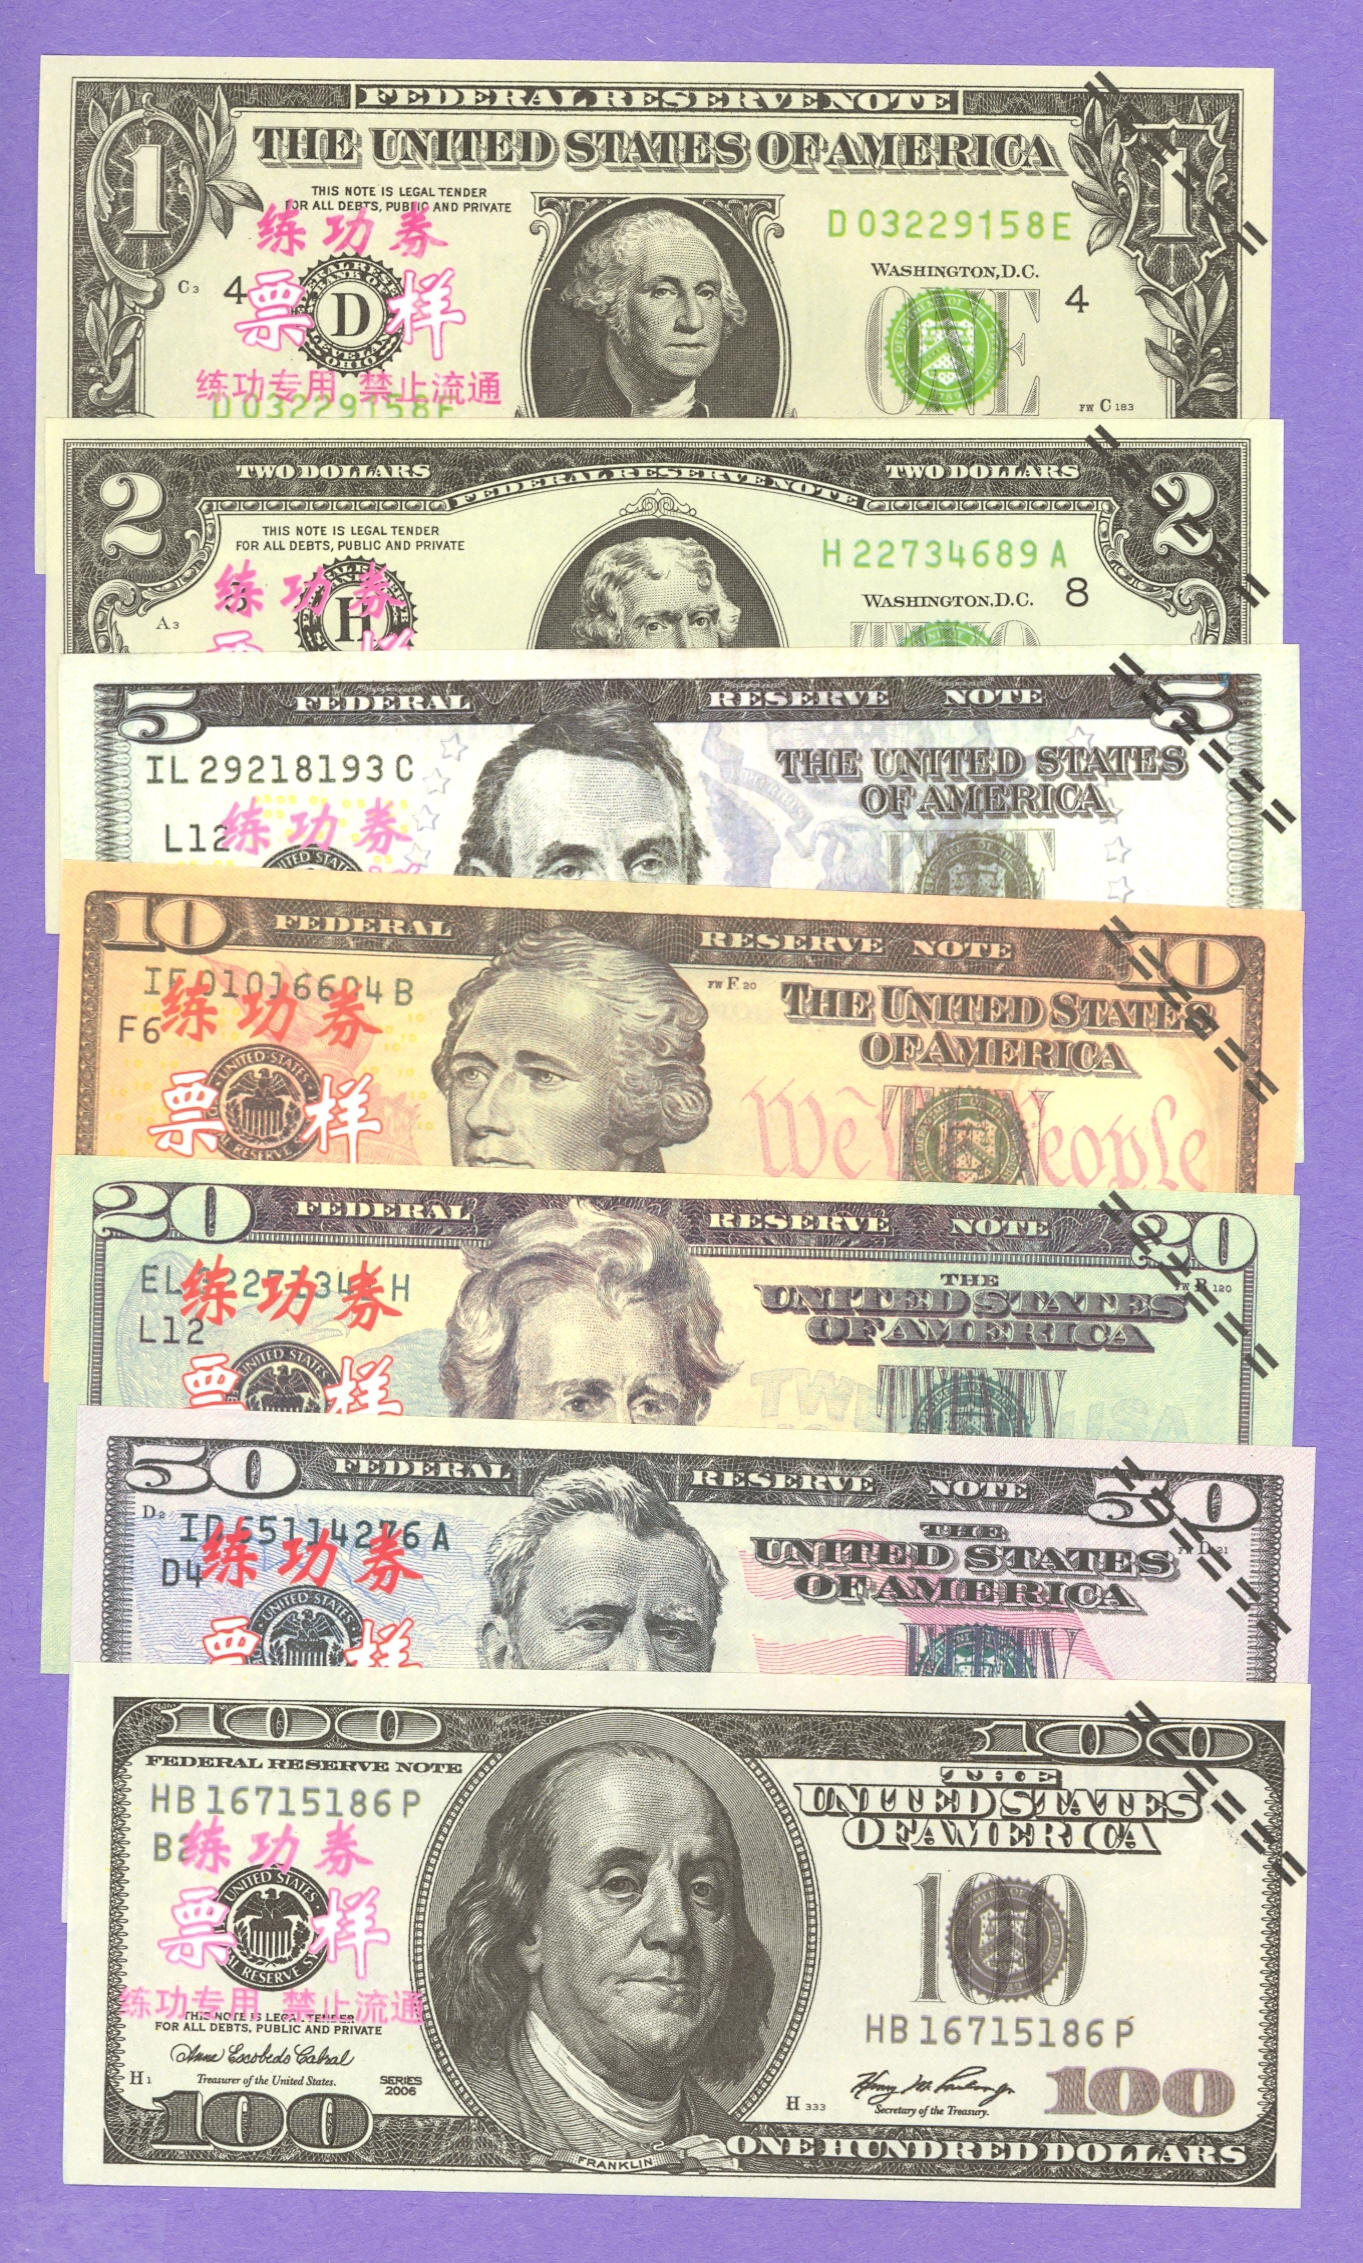 US Practice Currency Used In China by Banks and Businesses